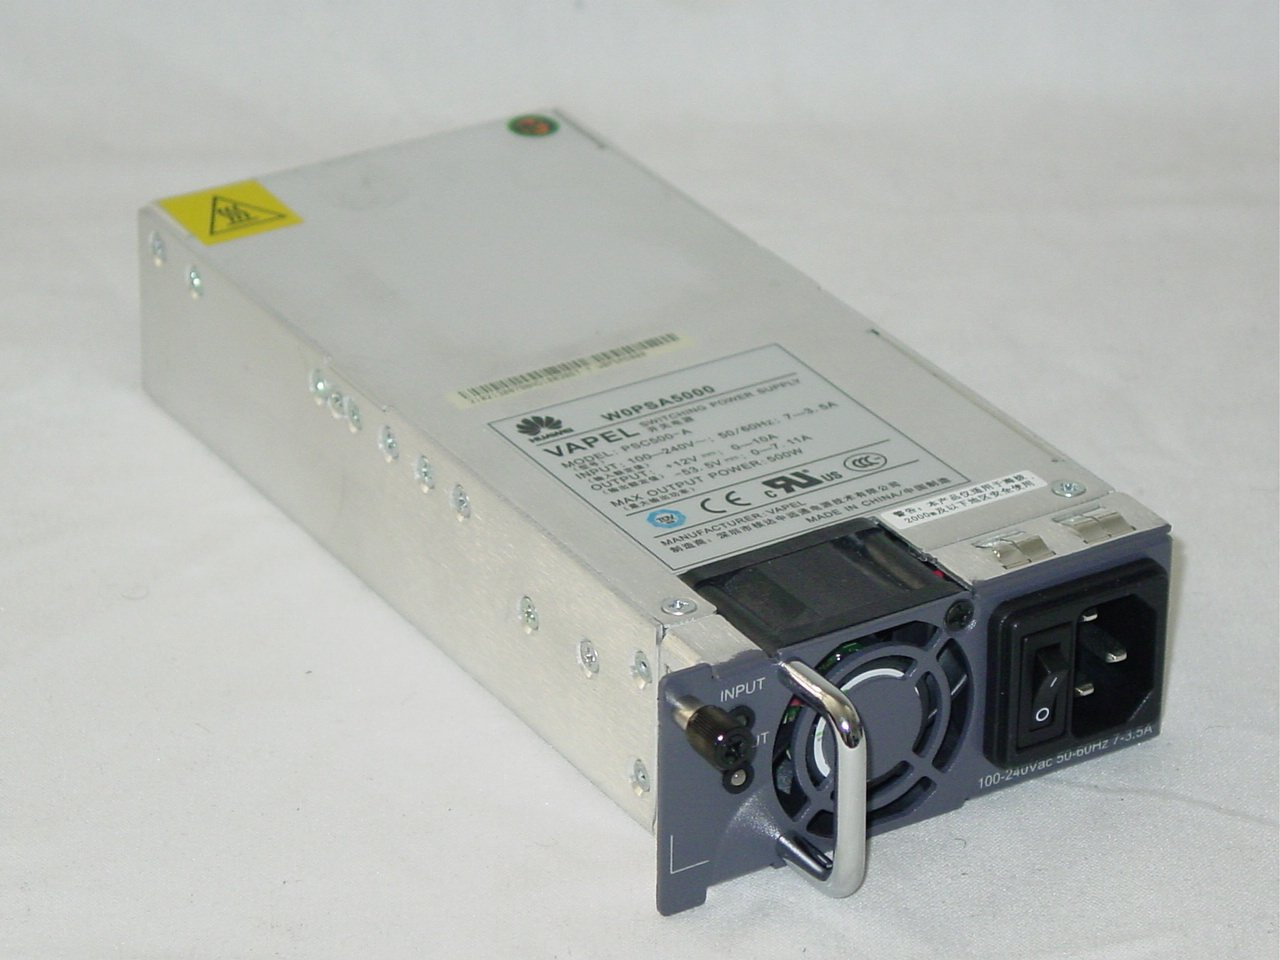 Huawei W0PSA5000 500W Switching Power Supply Module Vapel PSC500-A